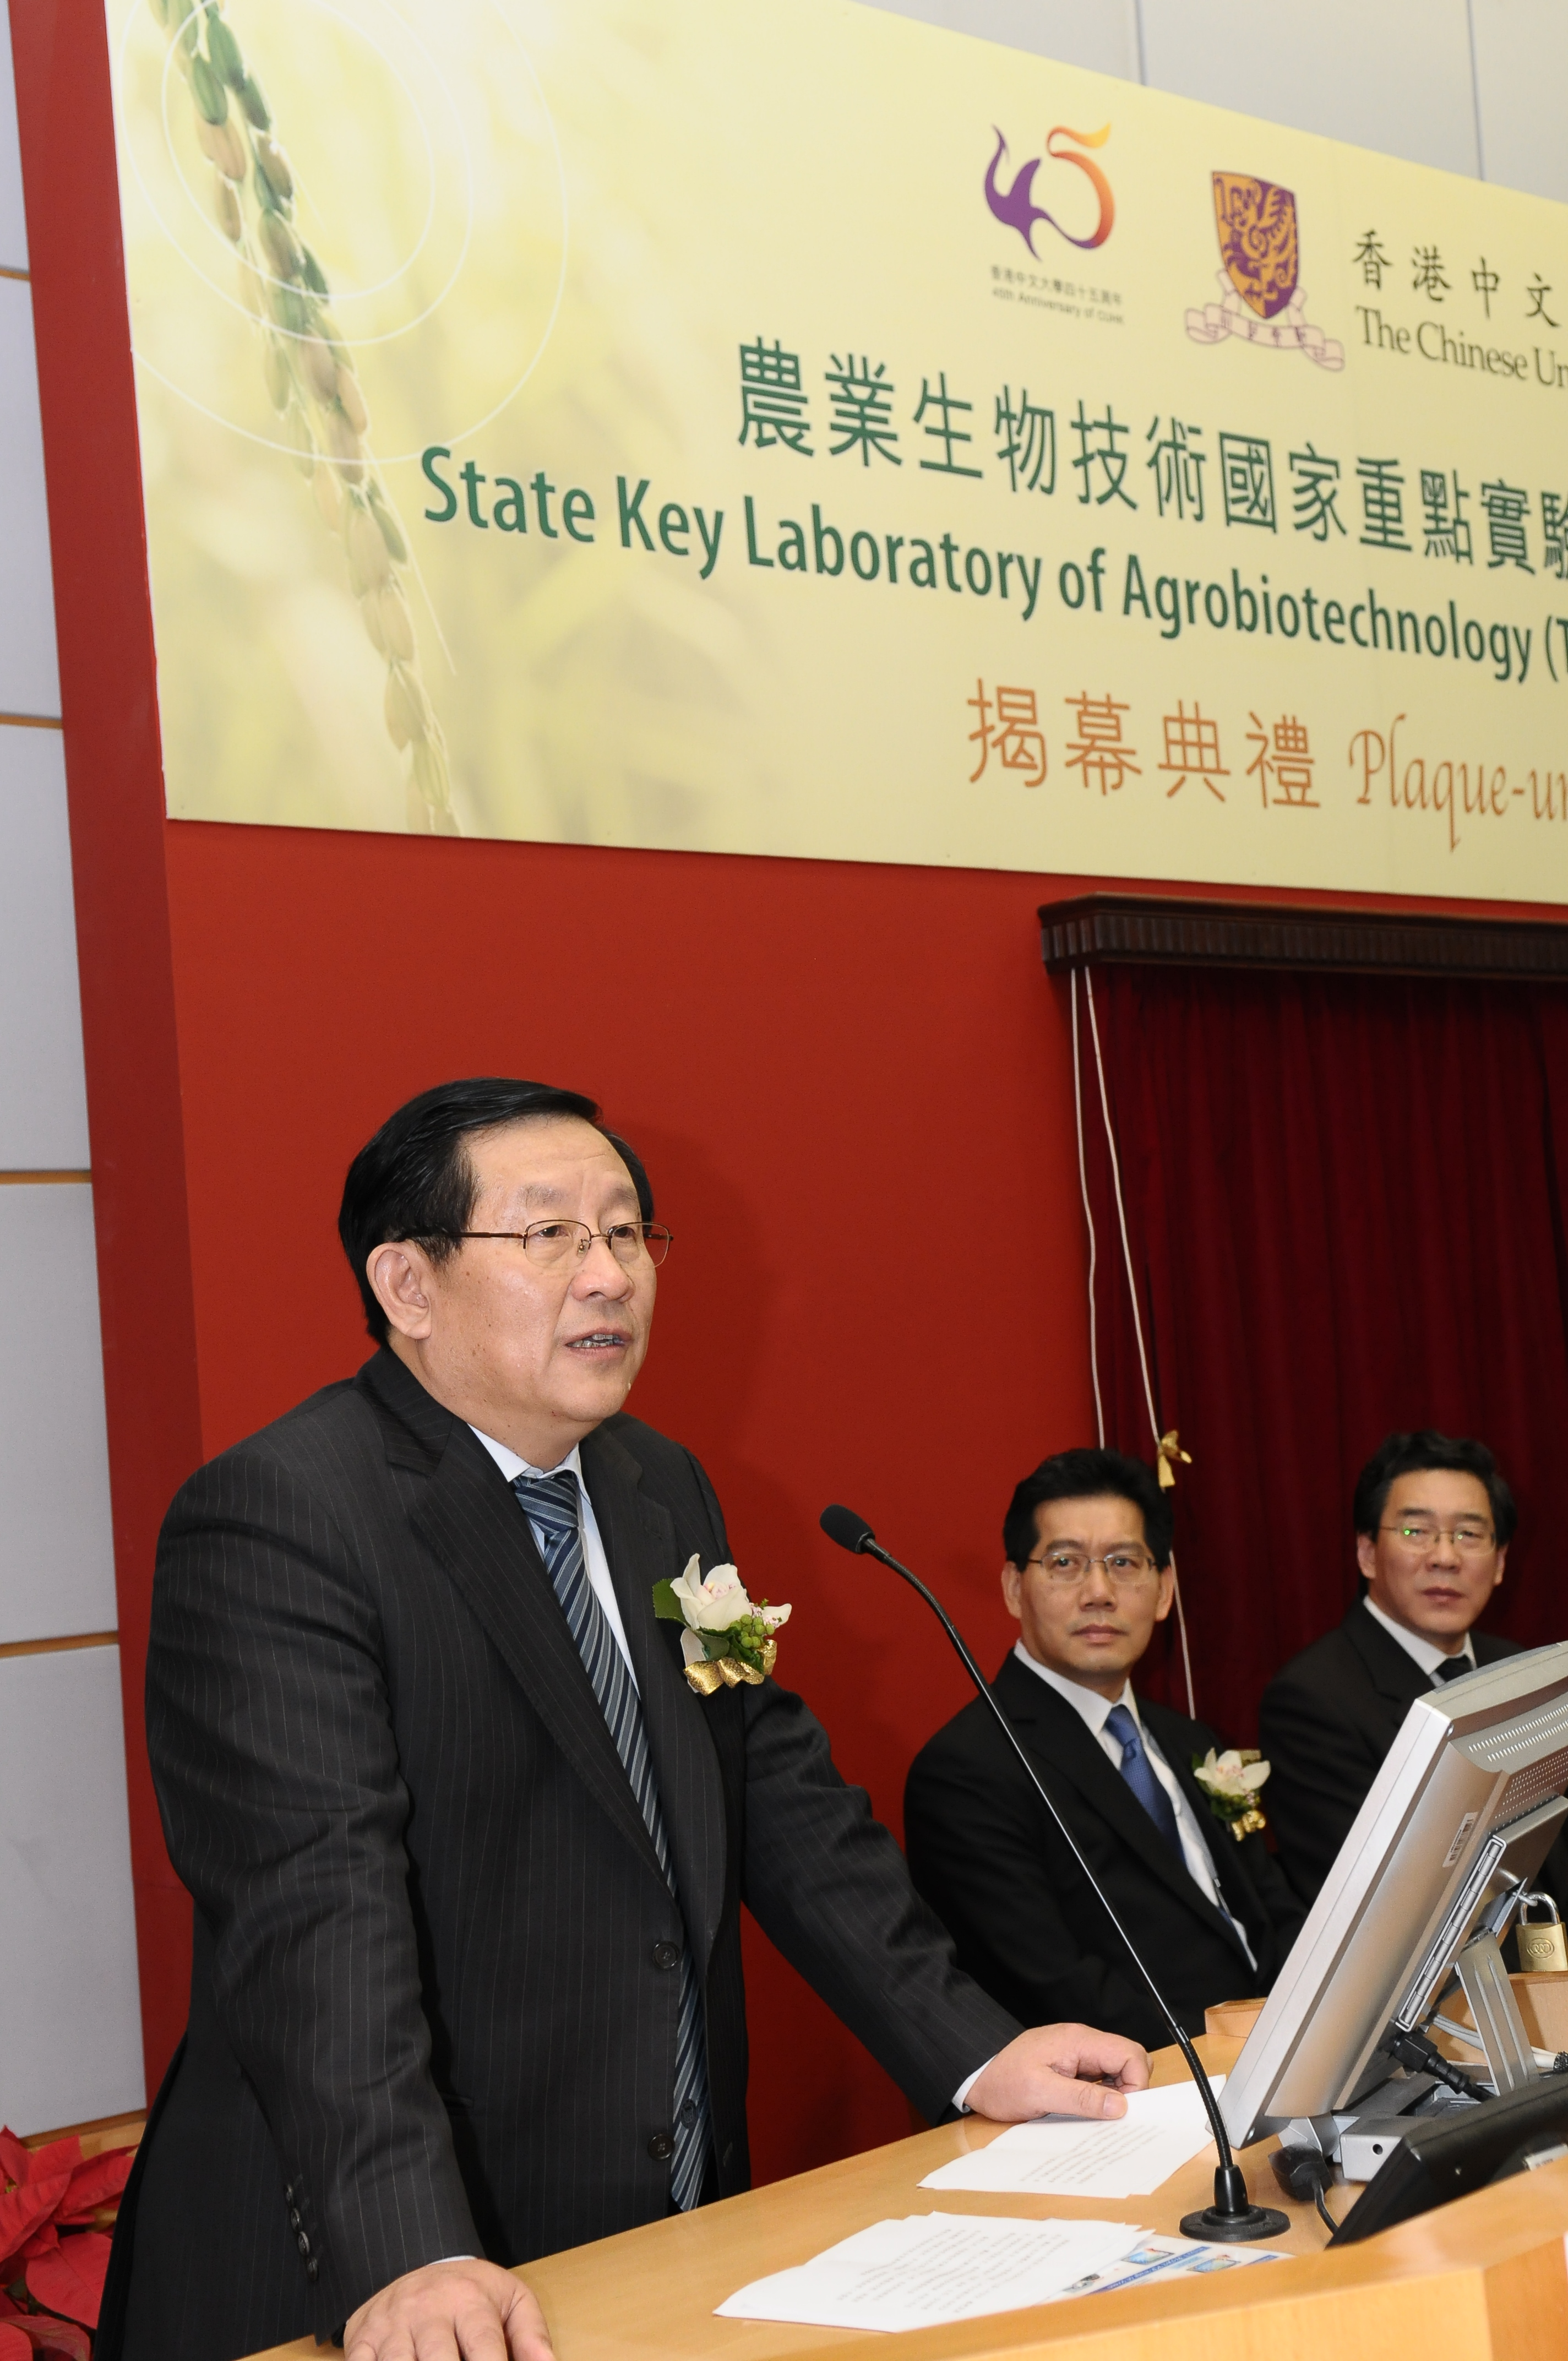 Professor Wan Gang, Minister of Science and Technology, PRC